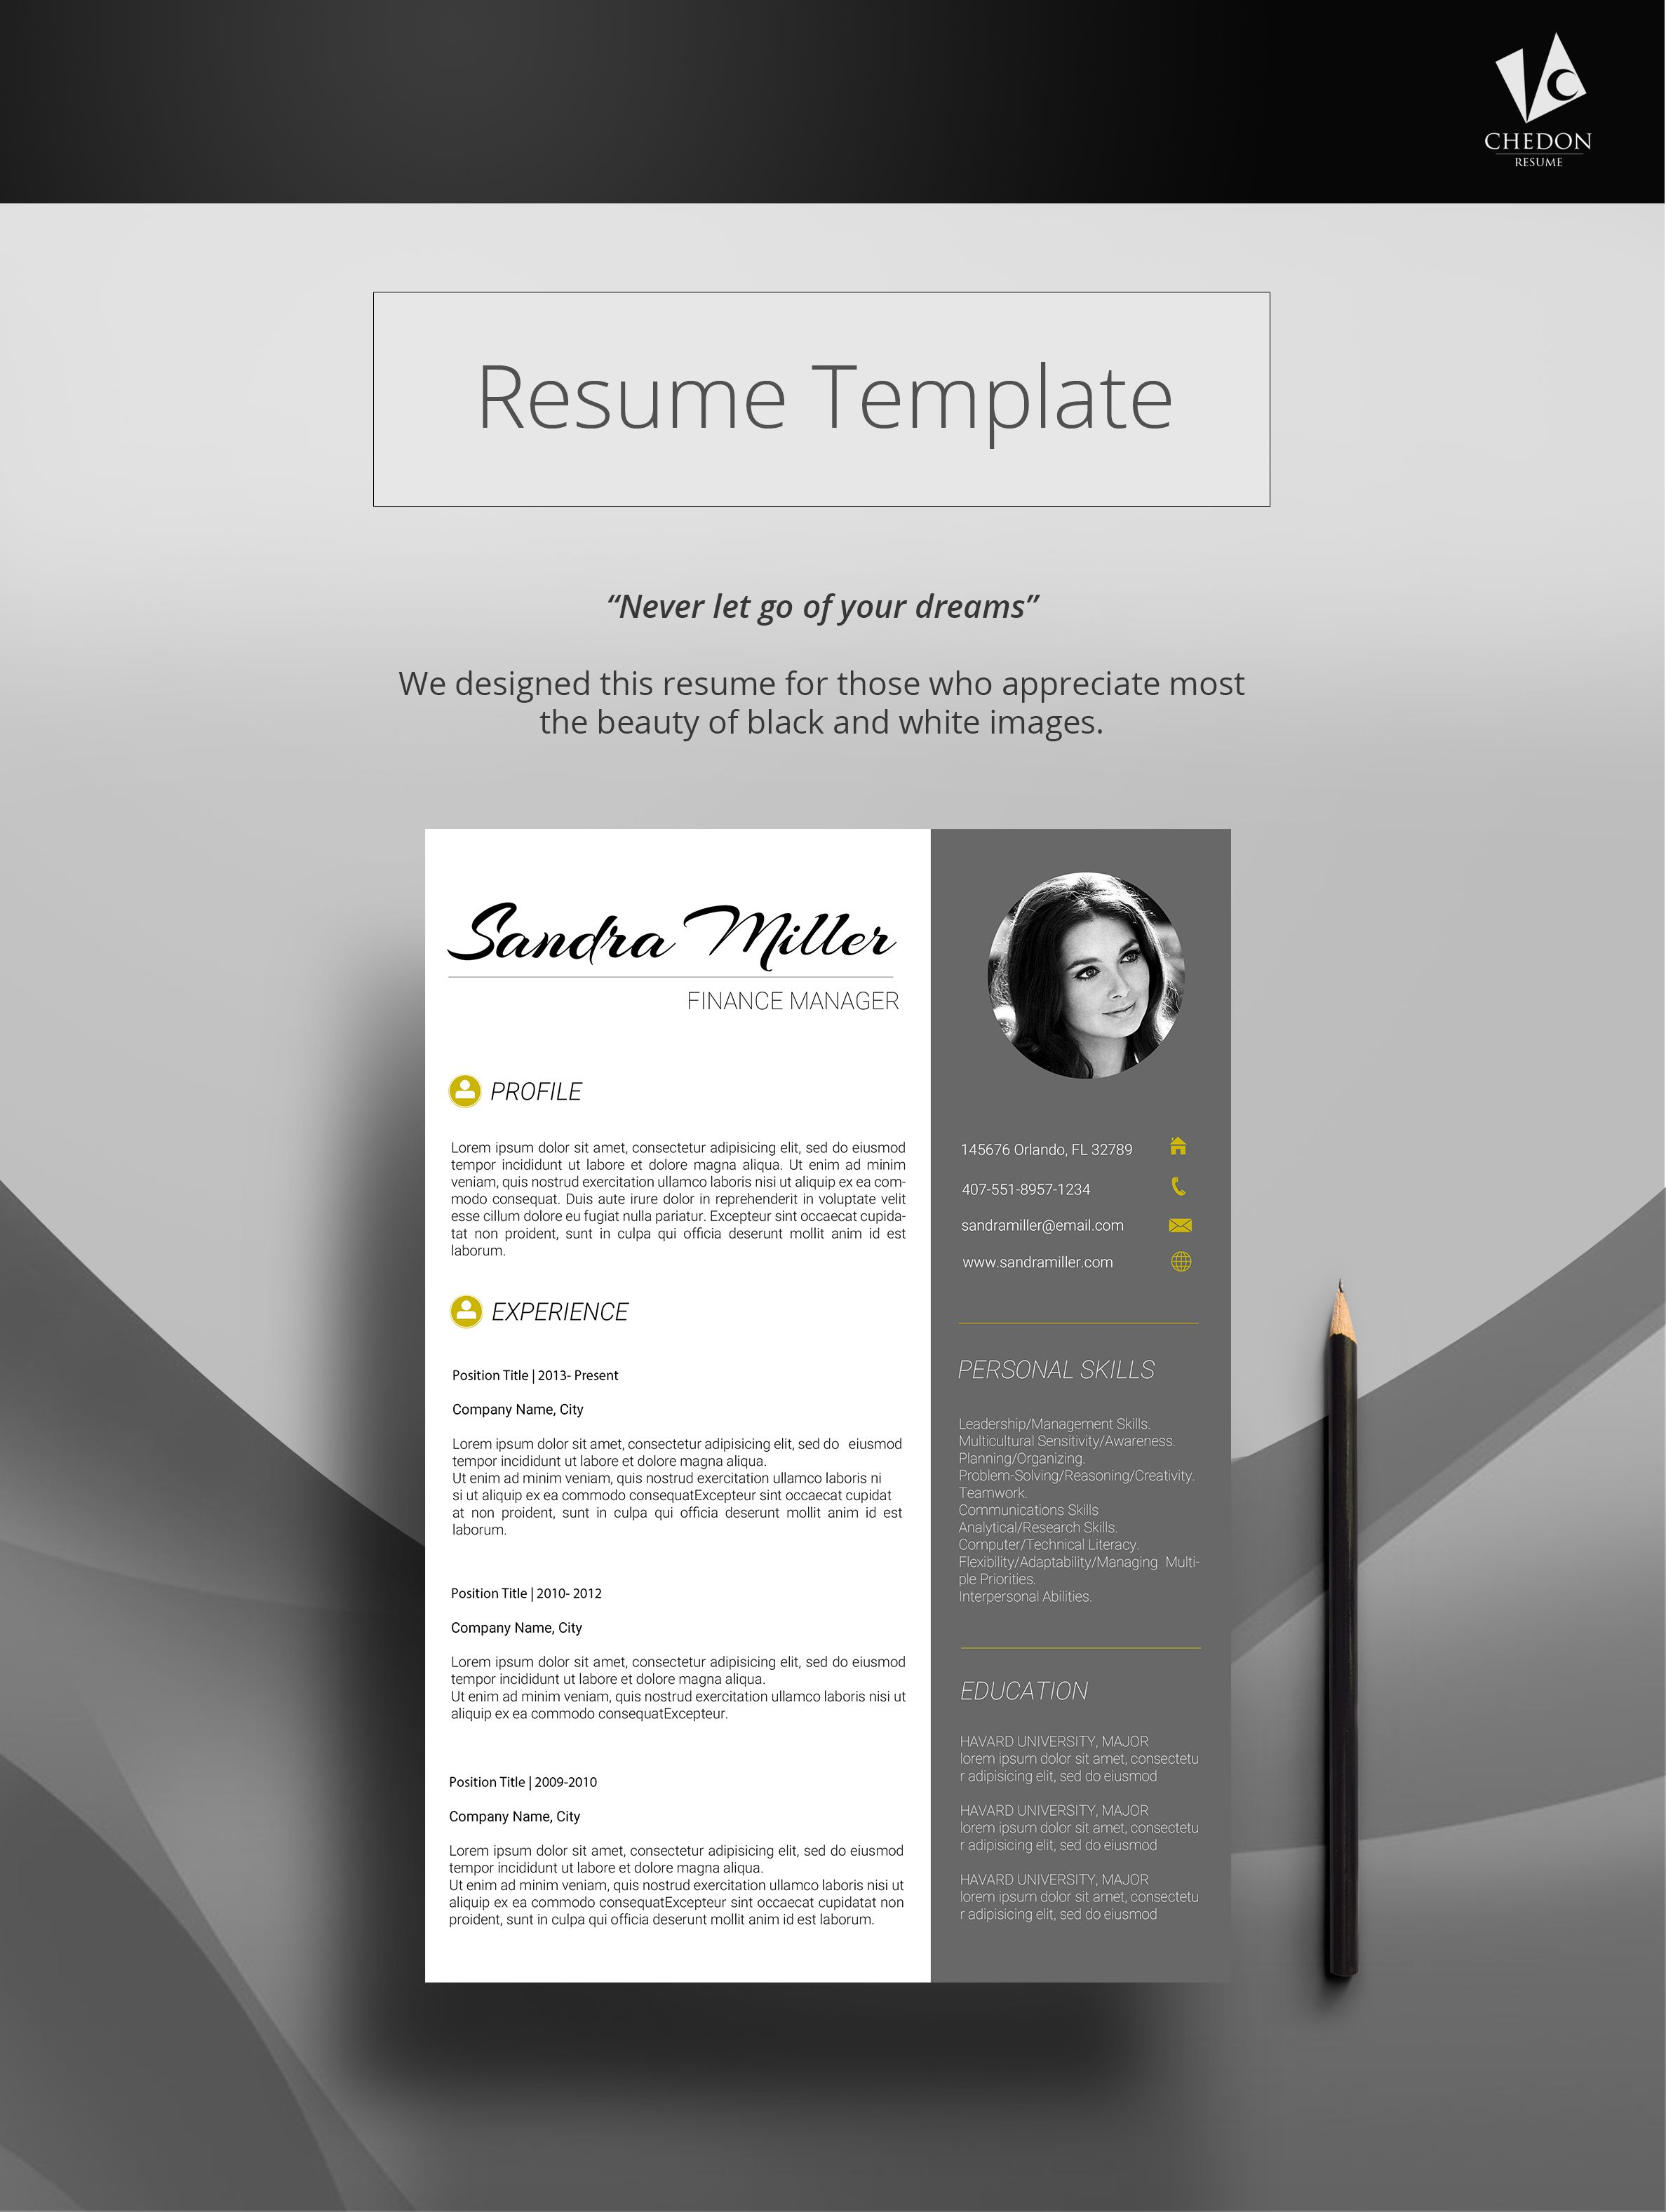 LUX RESUME Looking for a simple black and white resume design? Check ...